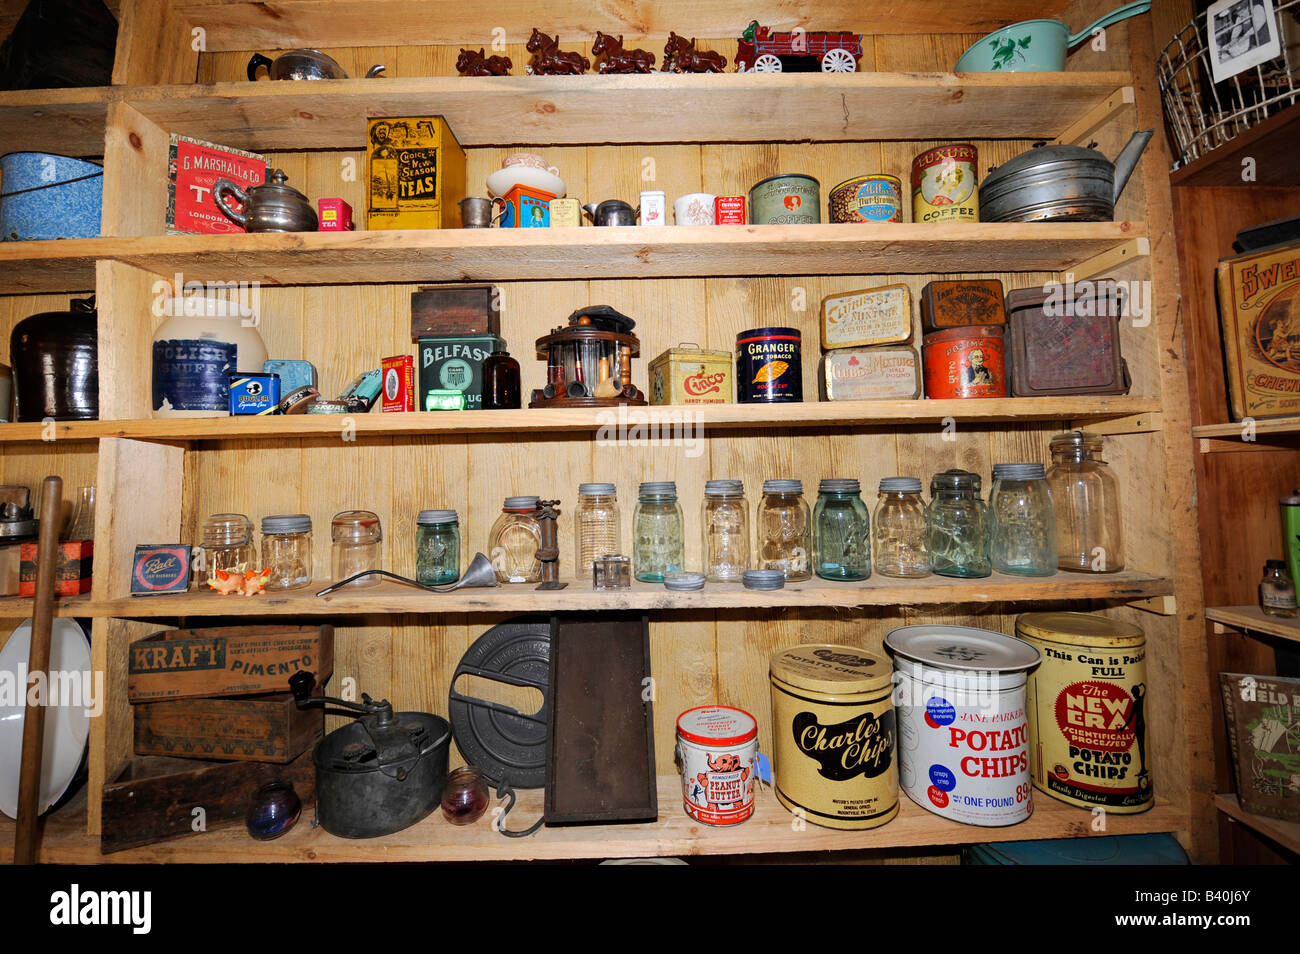 Antique products on the shelf of a historical general store setting - Stock Image